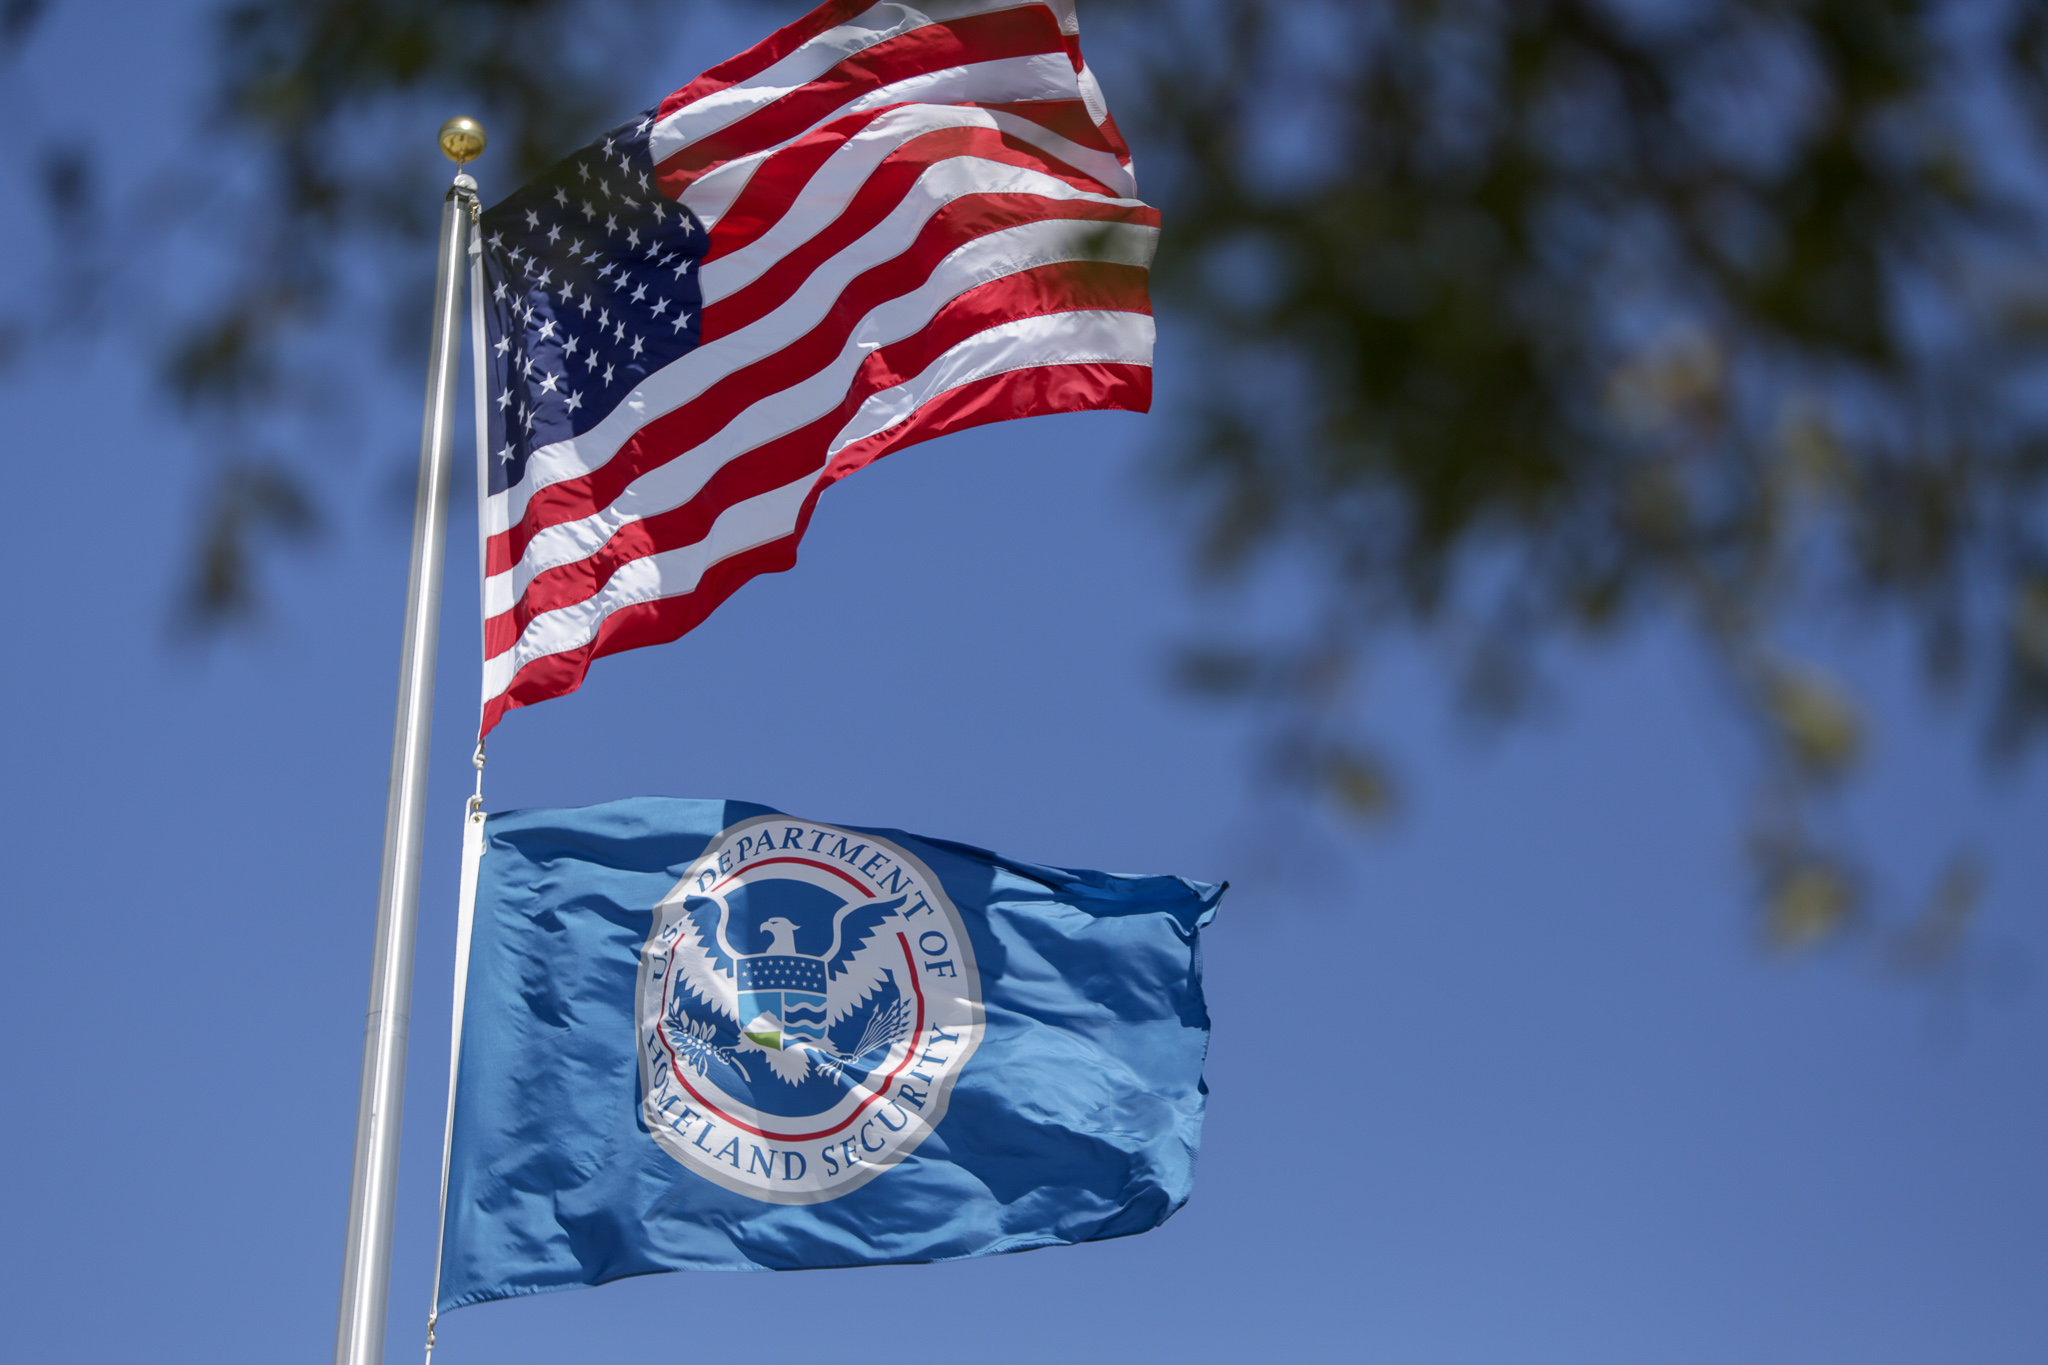 The United States flag and the Department of Homeland Security flag wave outside an ICE (Immigration and Customs Enforcement) office.